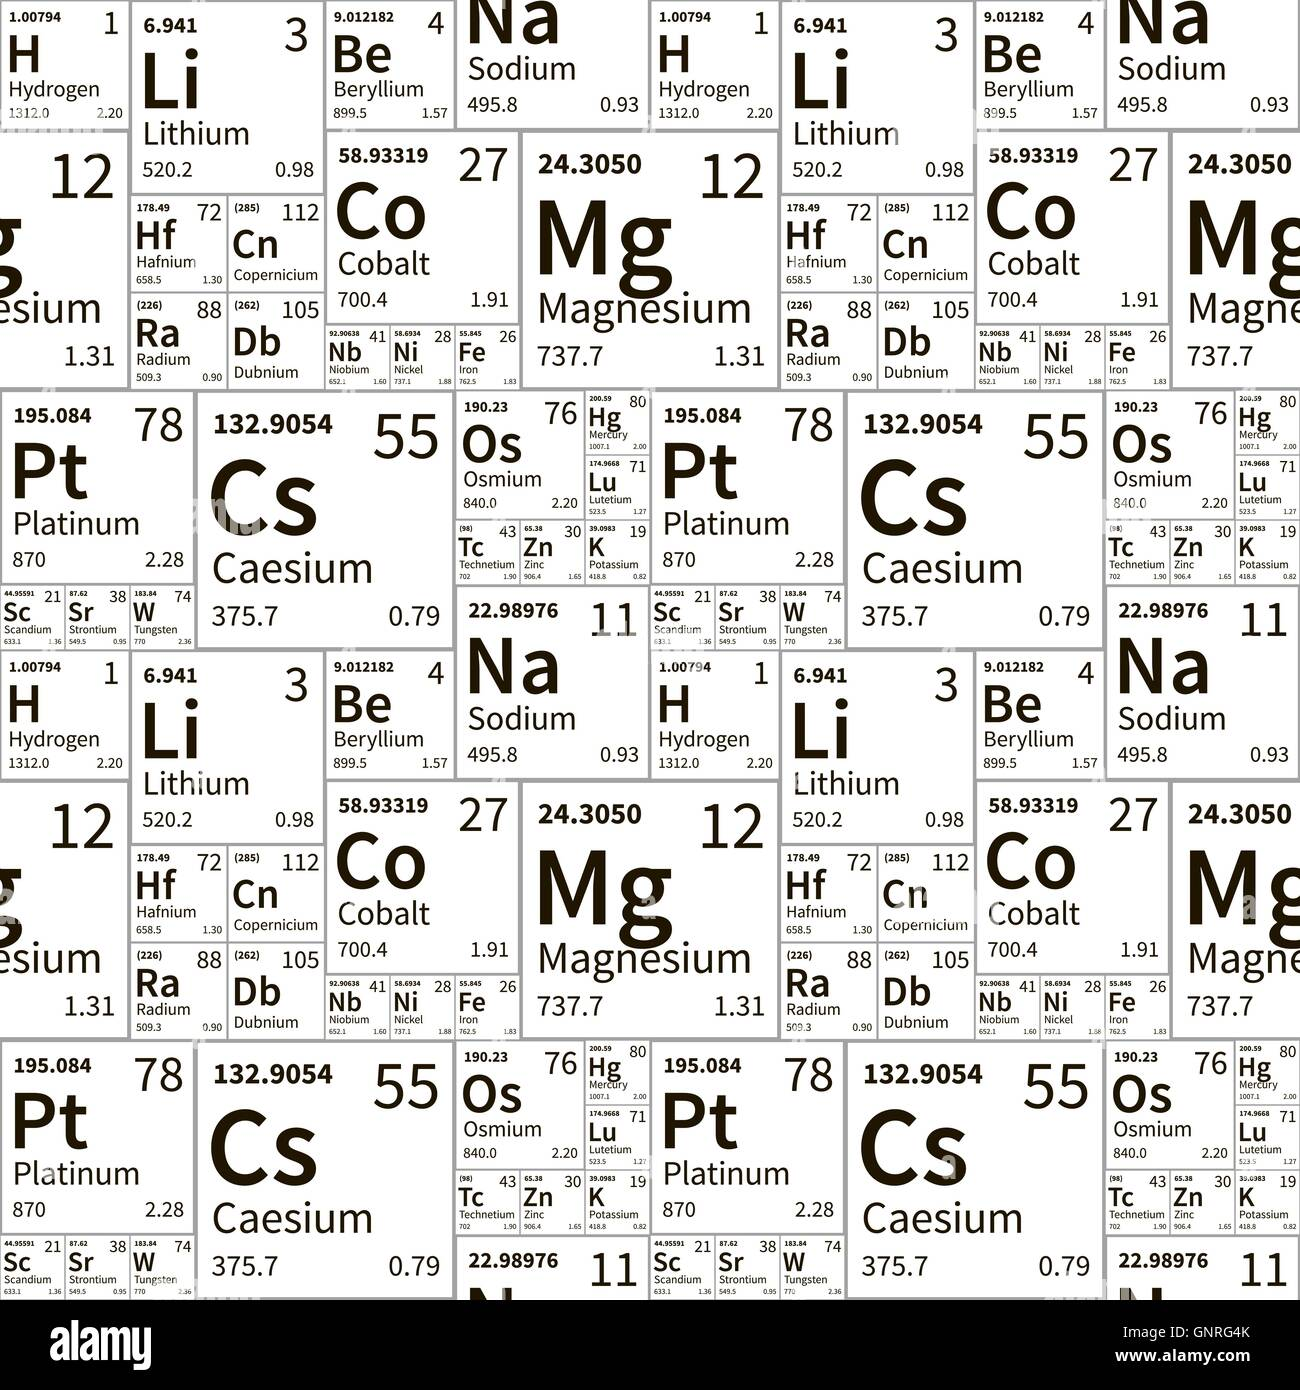 Chemical elements from periodic table black and white seamless chemical elements from periodic table black and white seamless pattern urtaz Choice Image